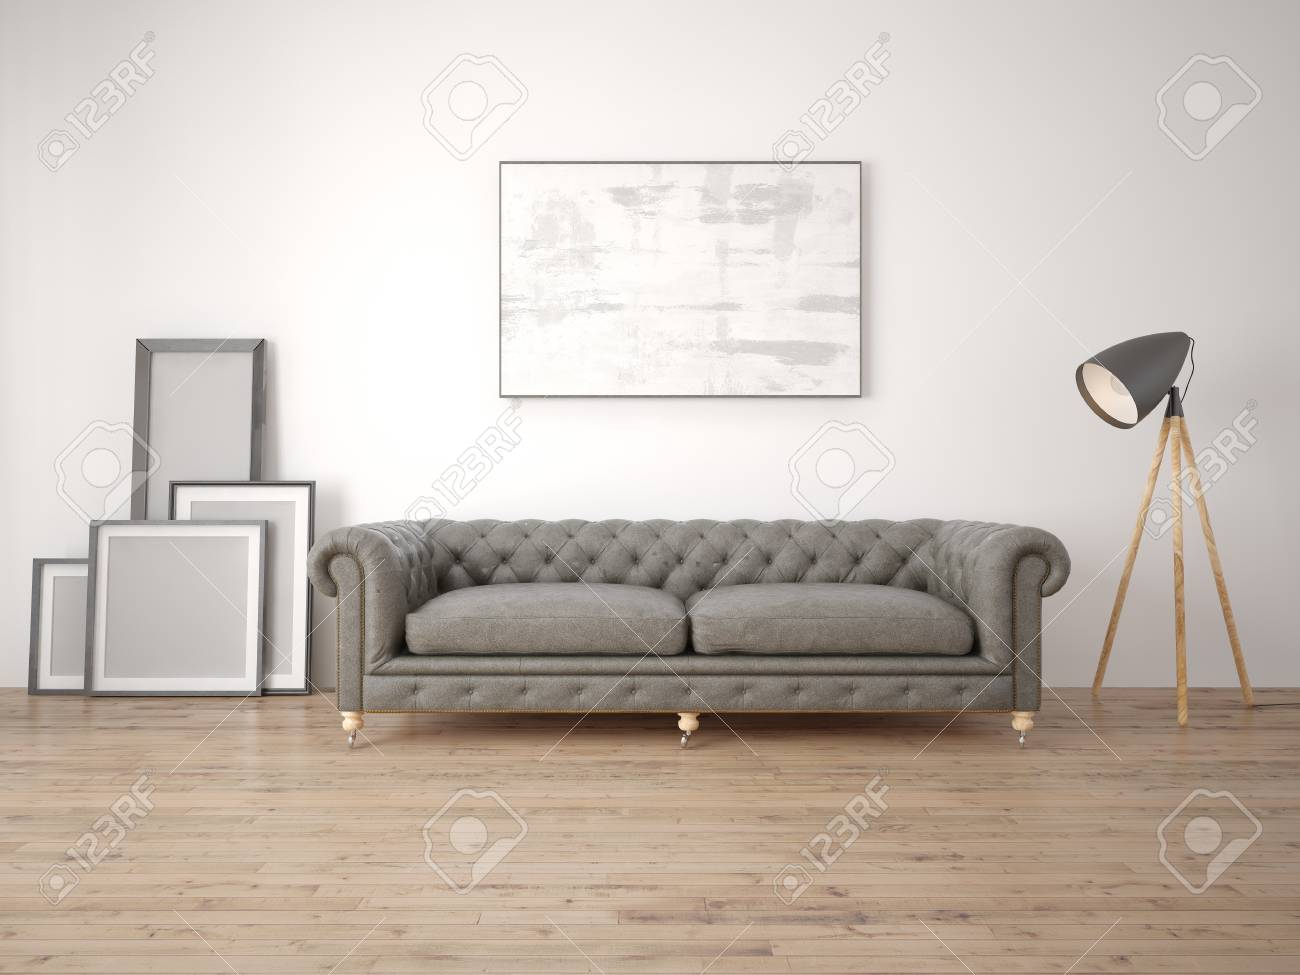 Mock Up A Modern Living Room With A Classic Sofa And A White Stock Photo Picture And Royalty Free Image Image 98888563